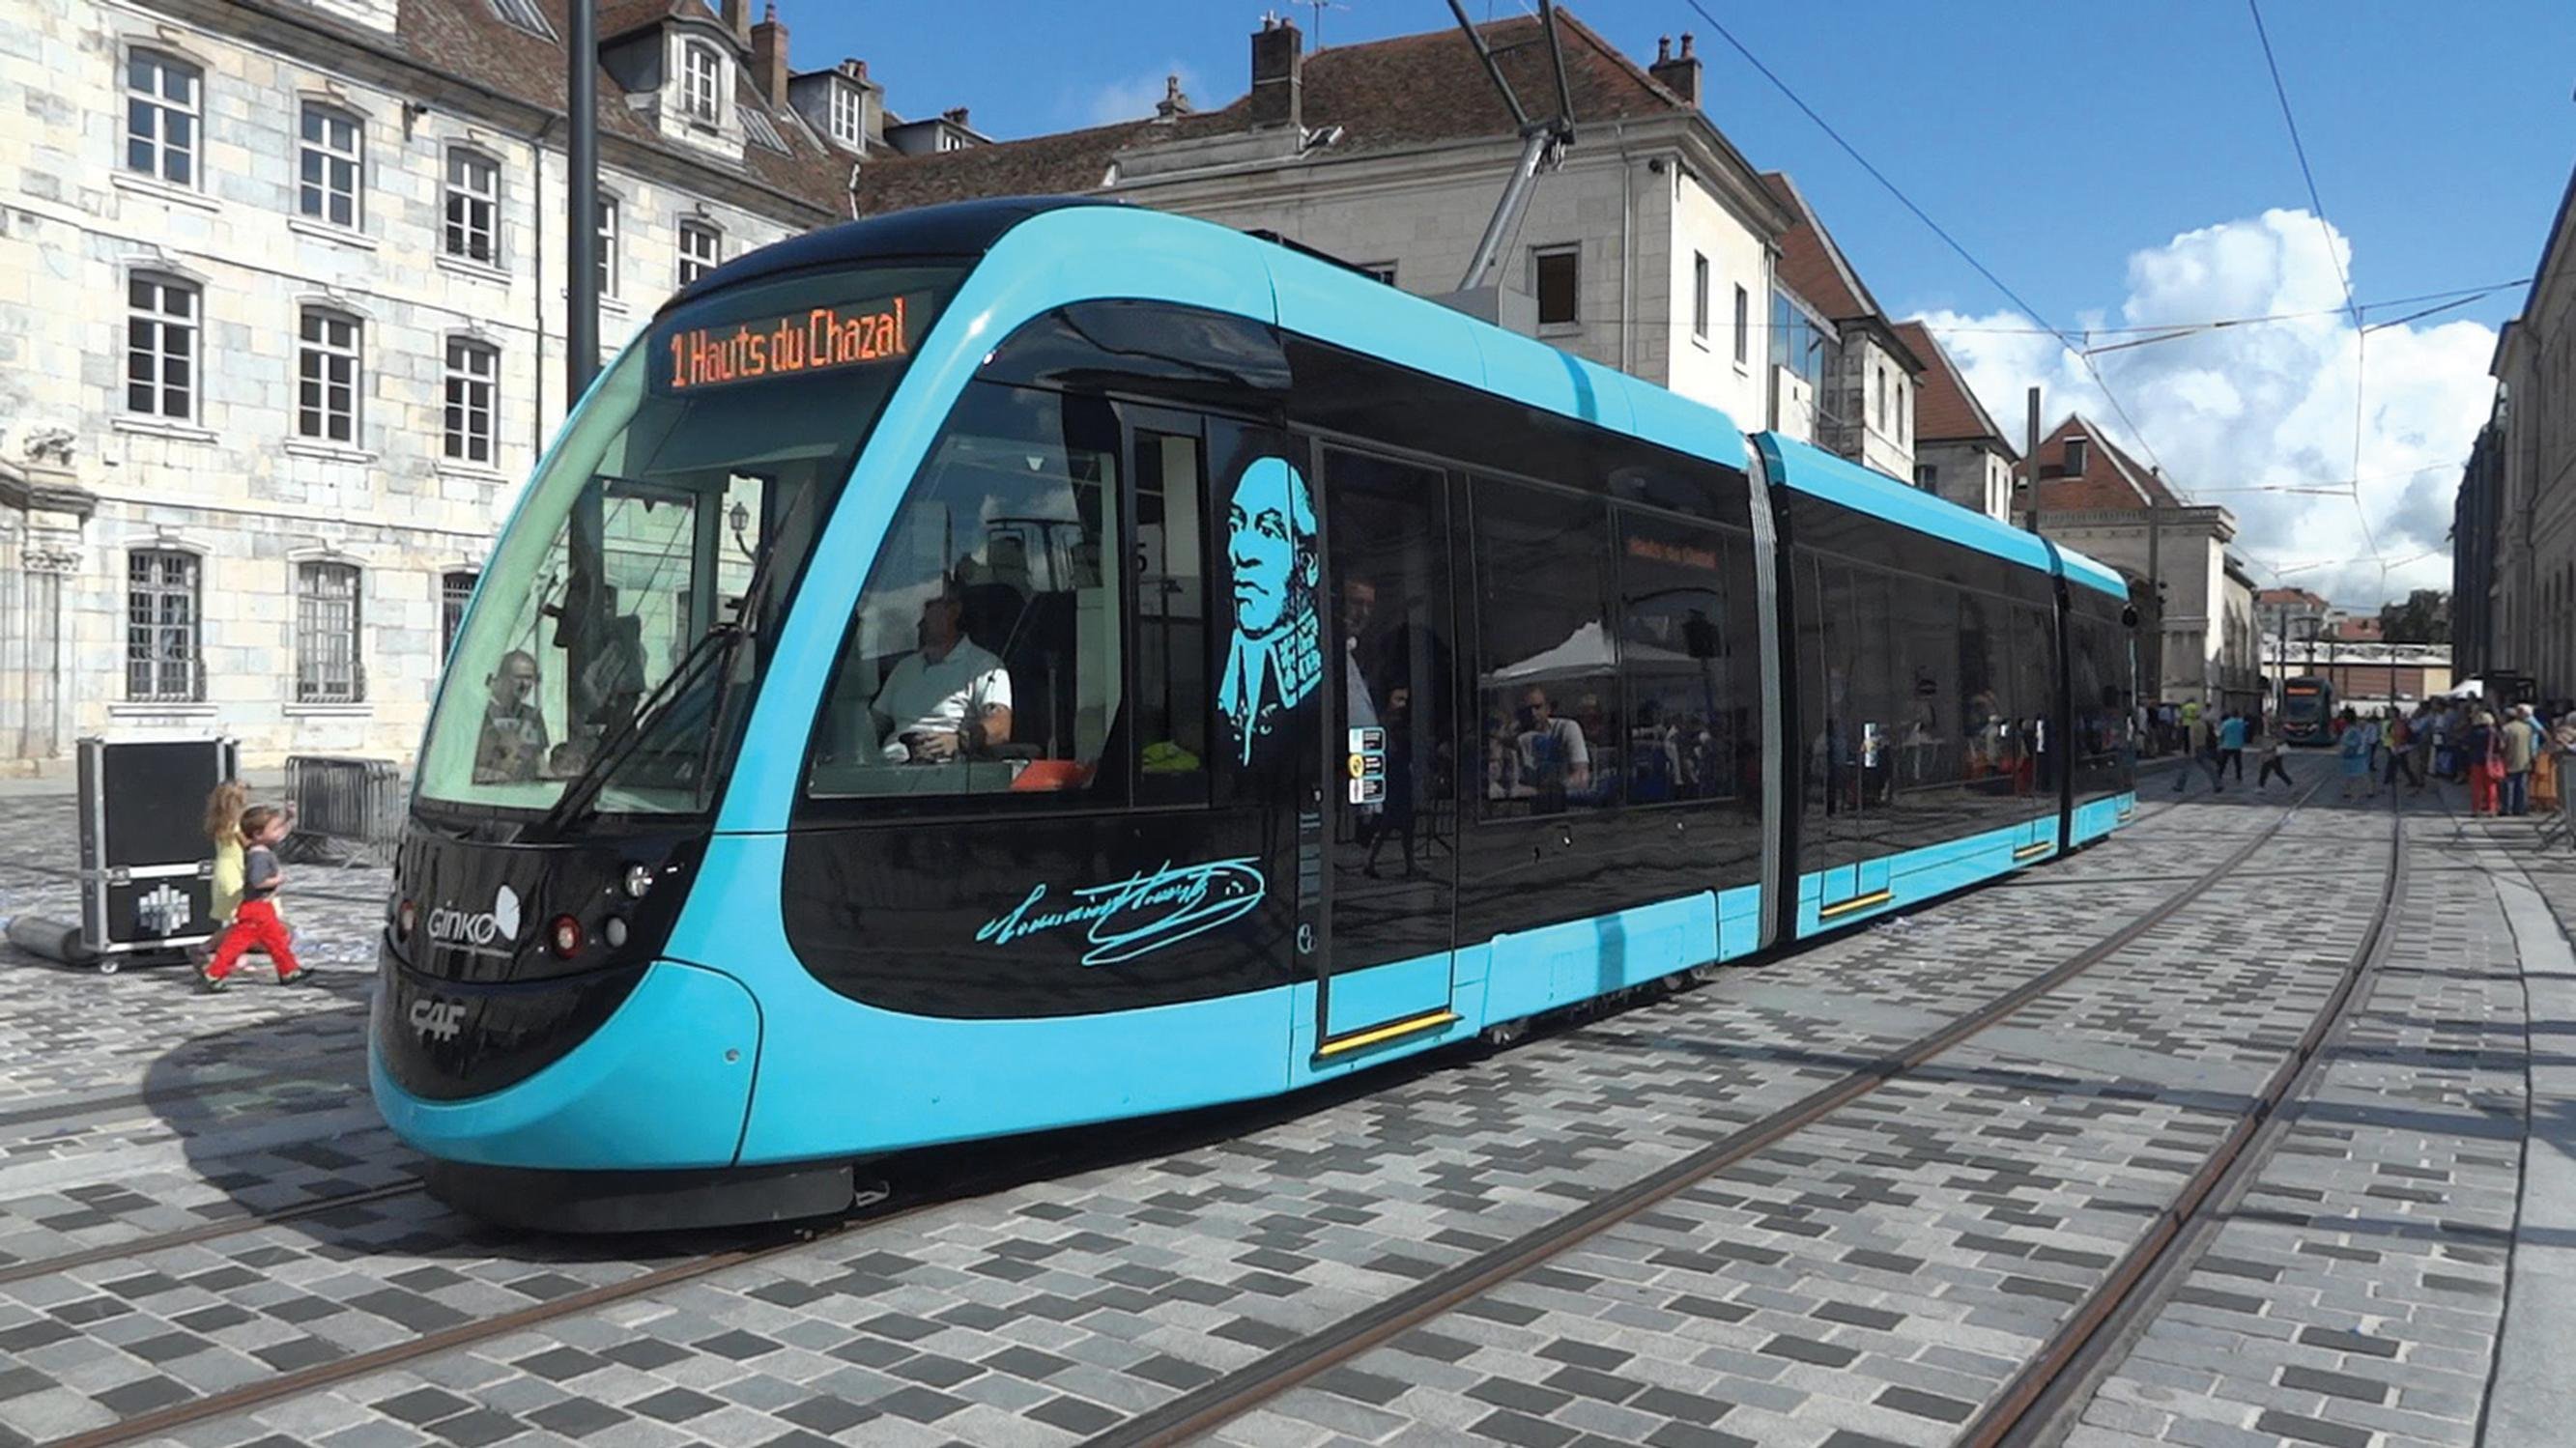 French cities such as Besançon have built tramways, so there's no reason why Bath couldn't support a system too, says Andrew Braddock